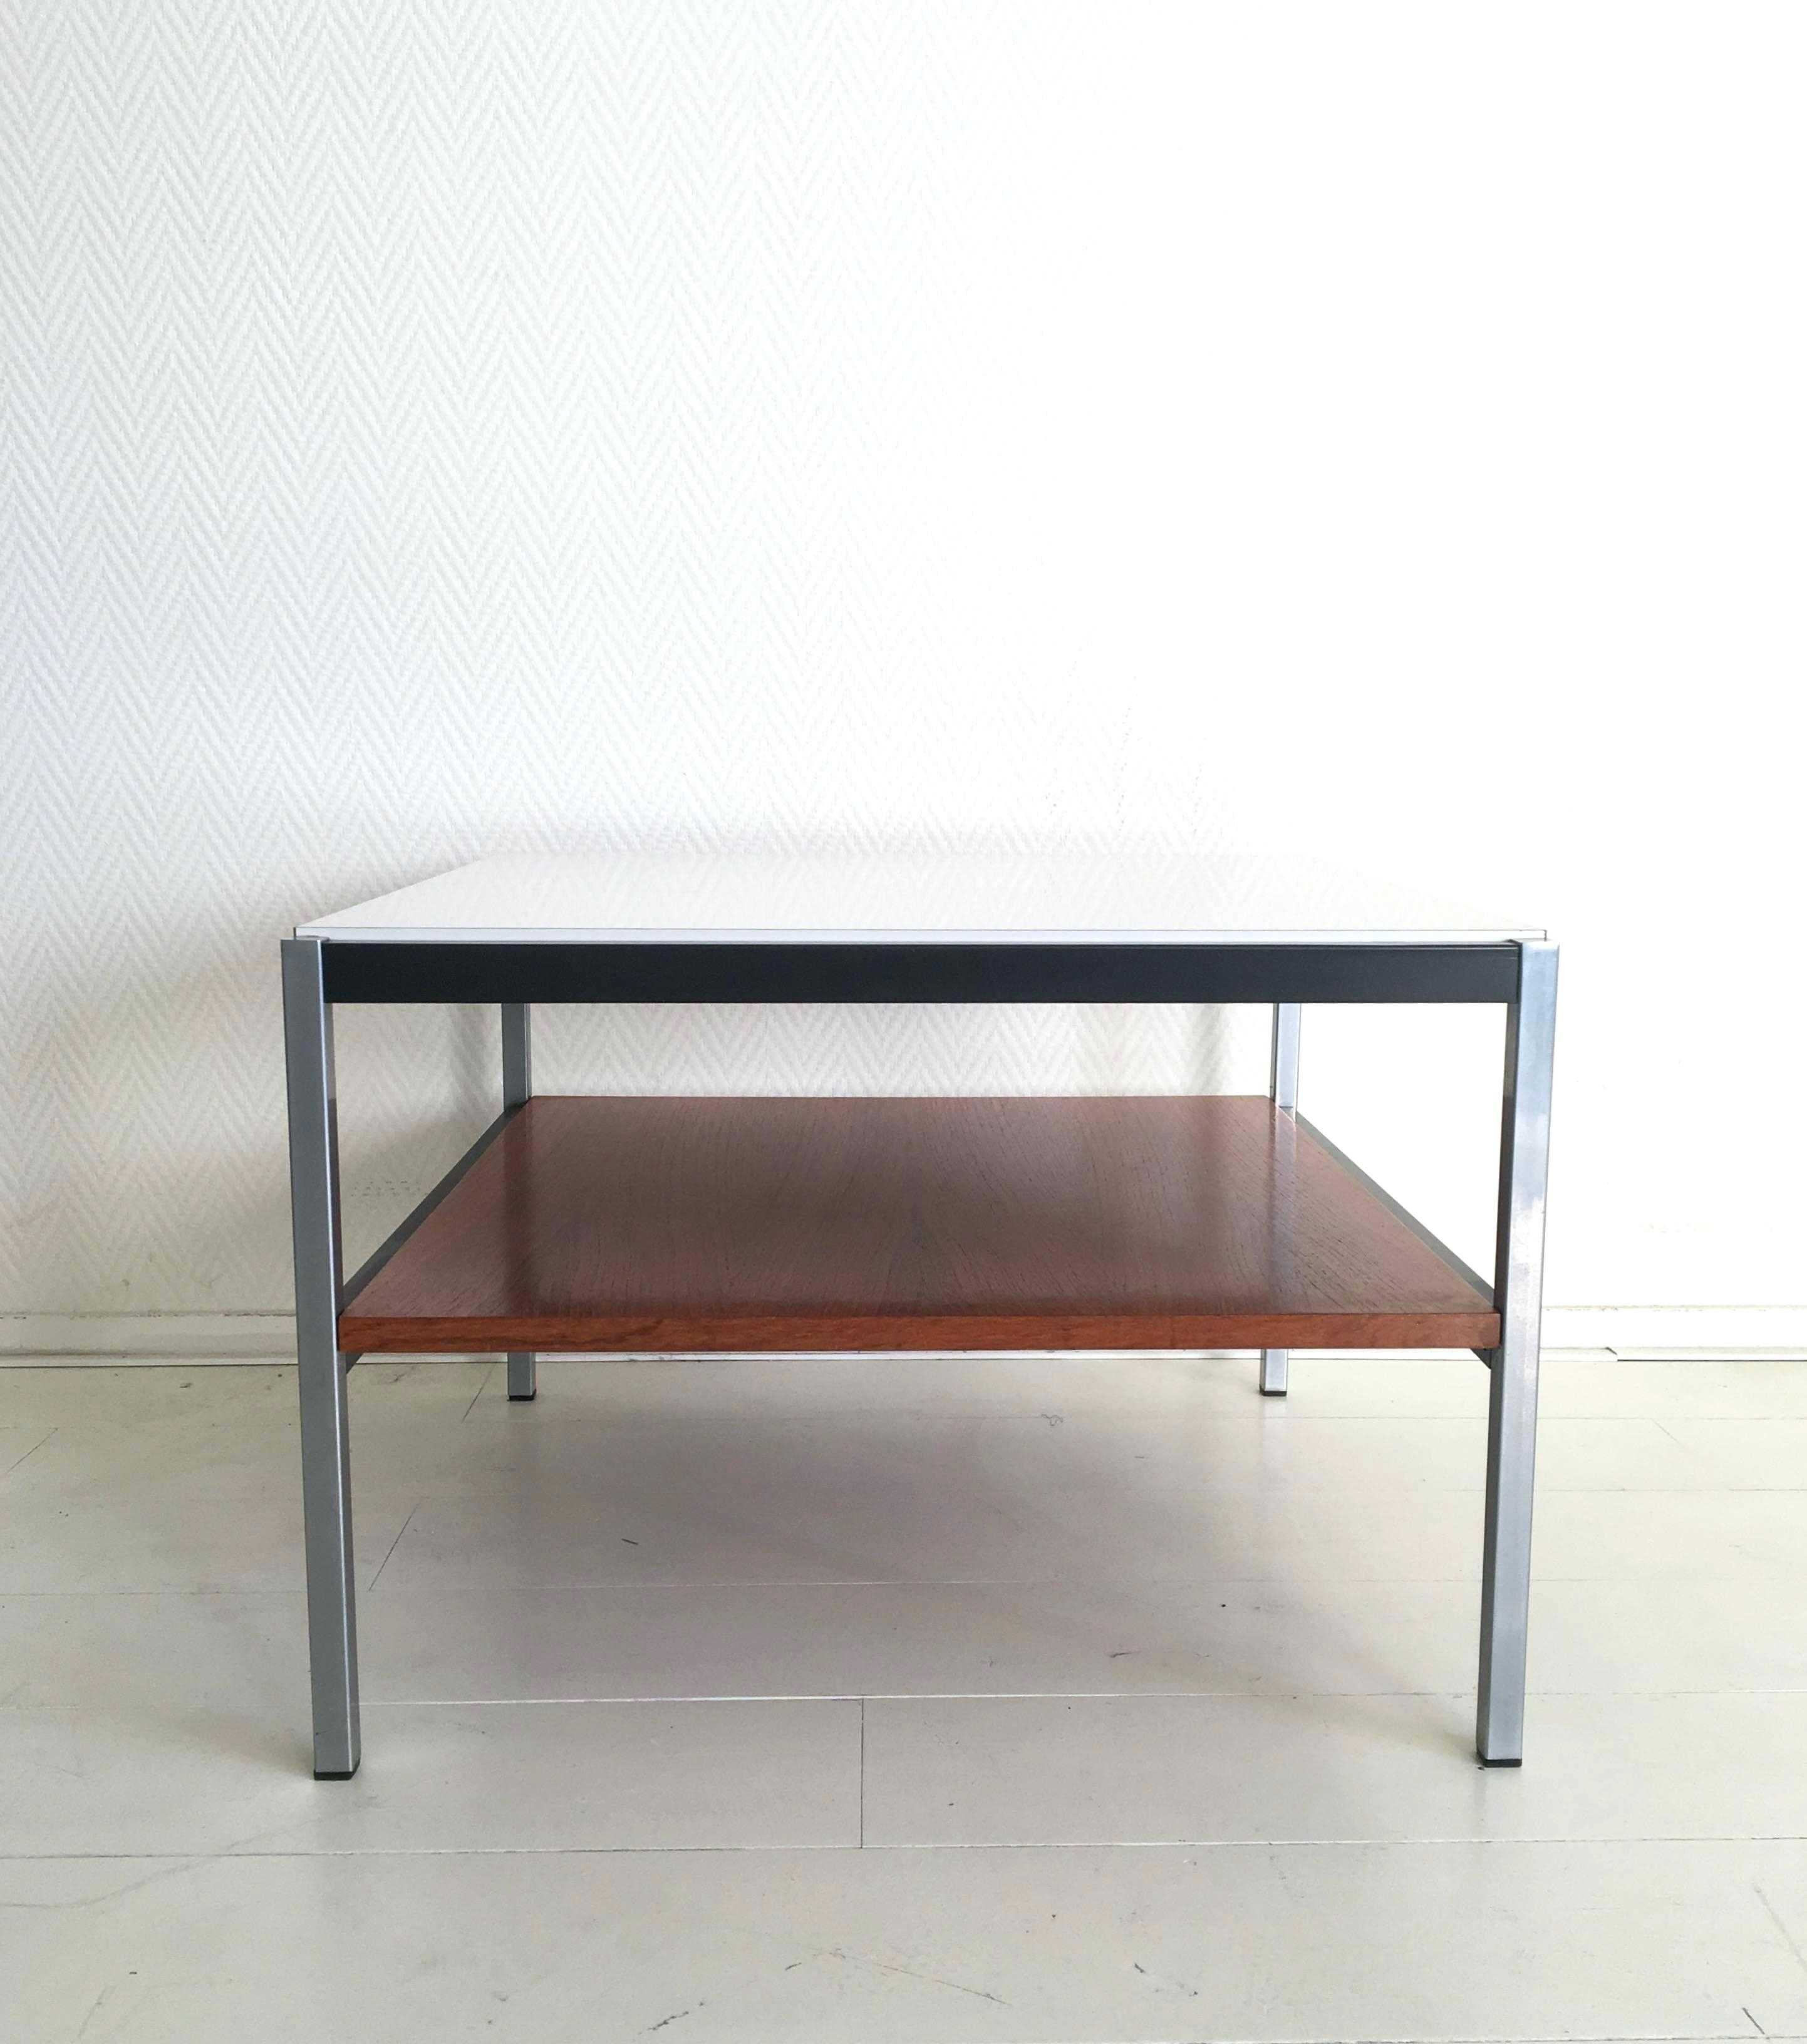 Dutch Minimalist Coffee Tablefor Sale Diy Id F – Topfudbal in Minimalist Coffee Tables (Image 5 of 30)